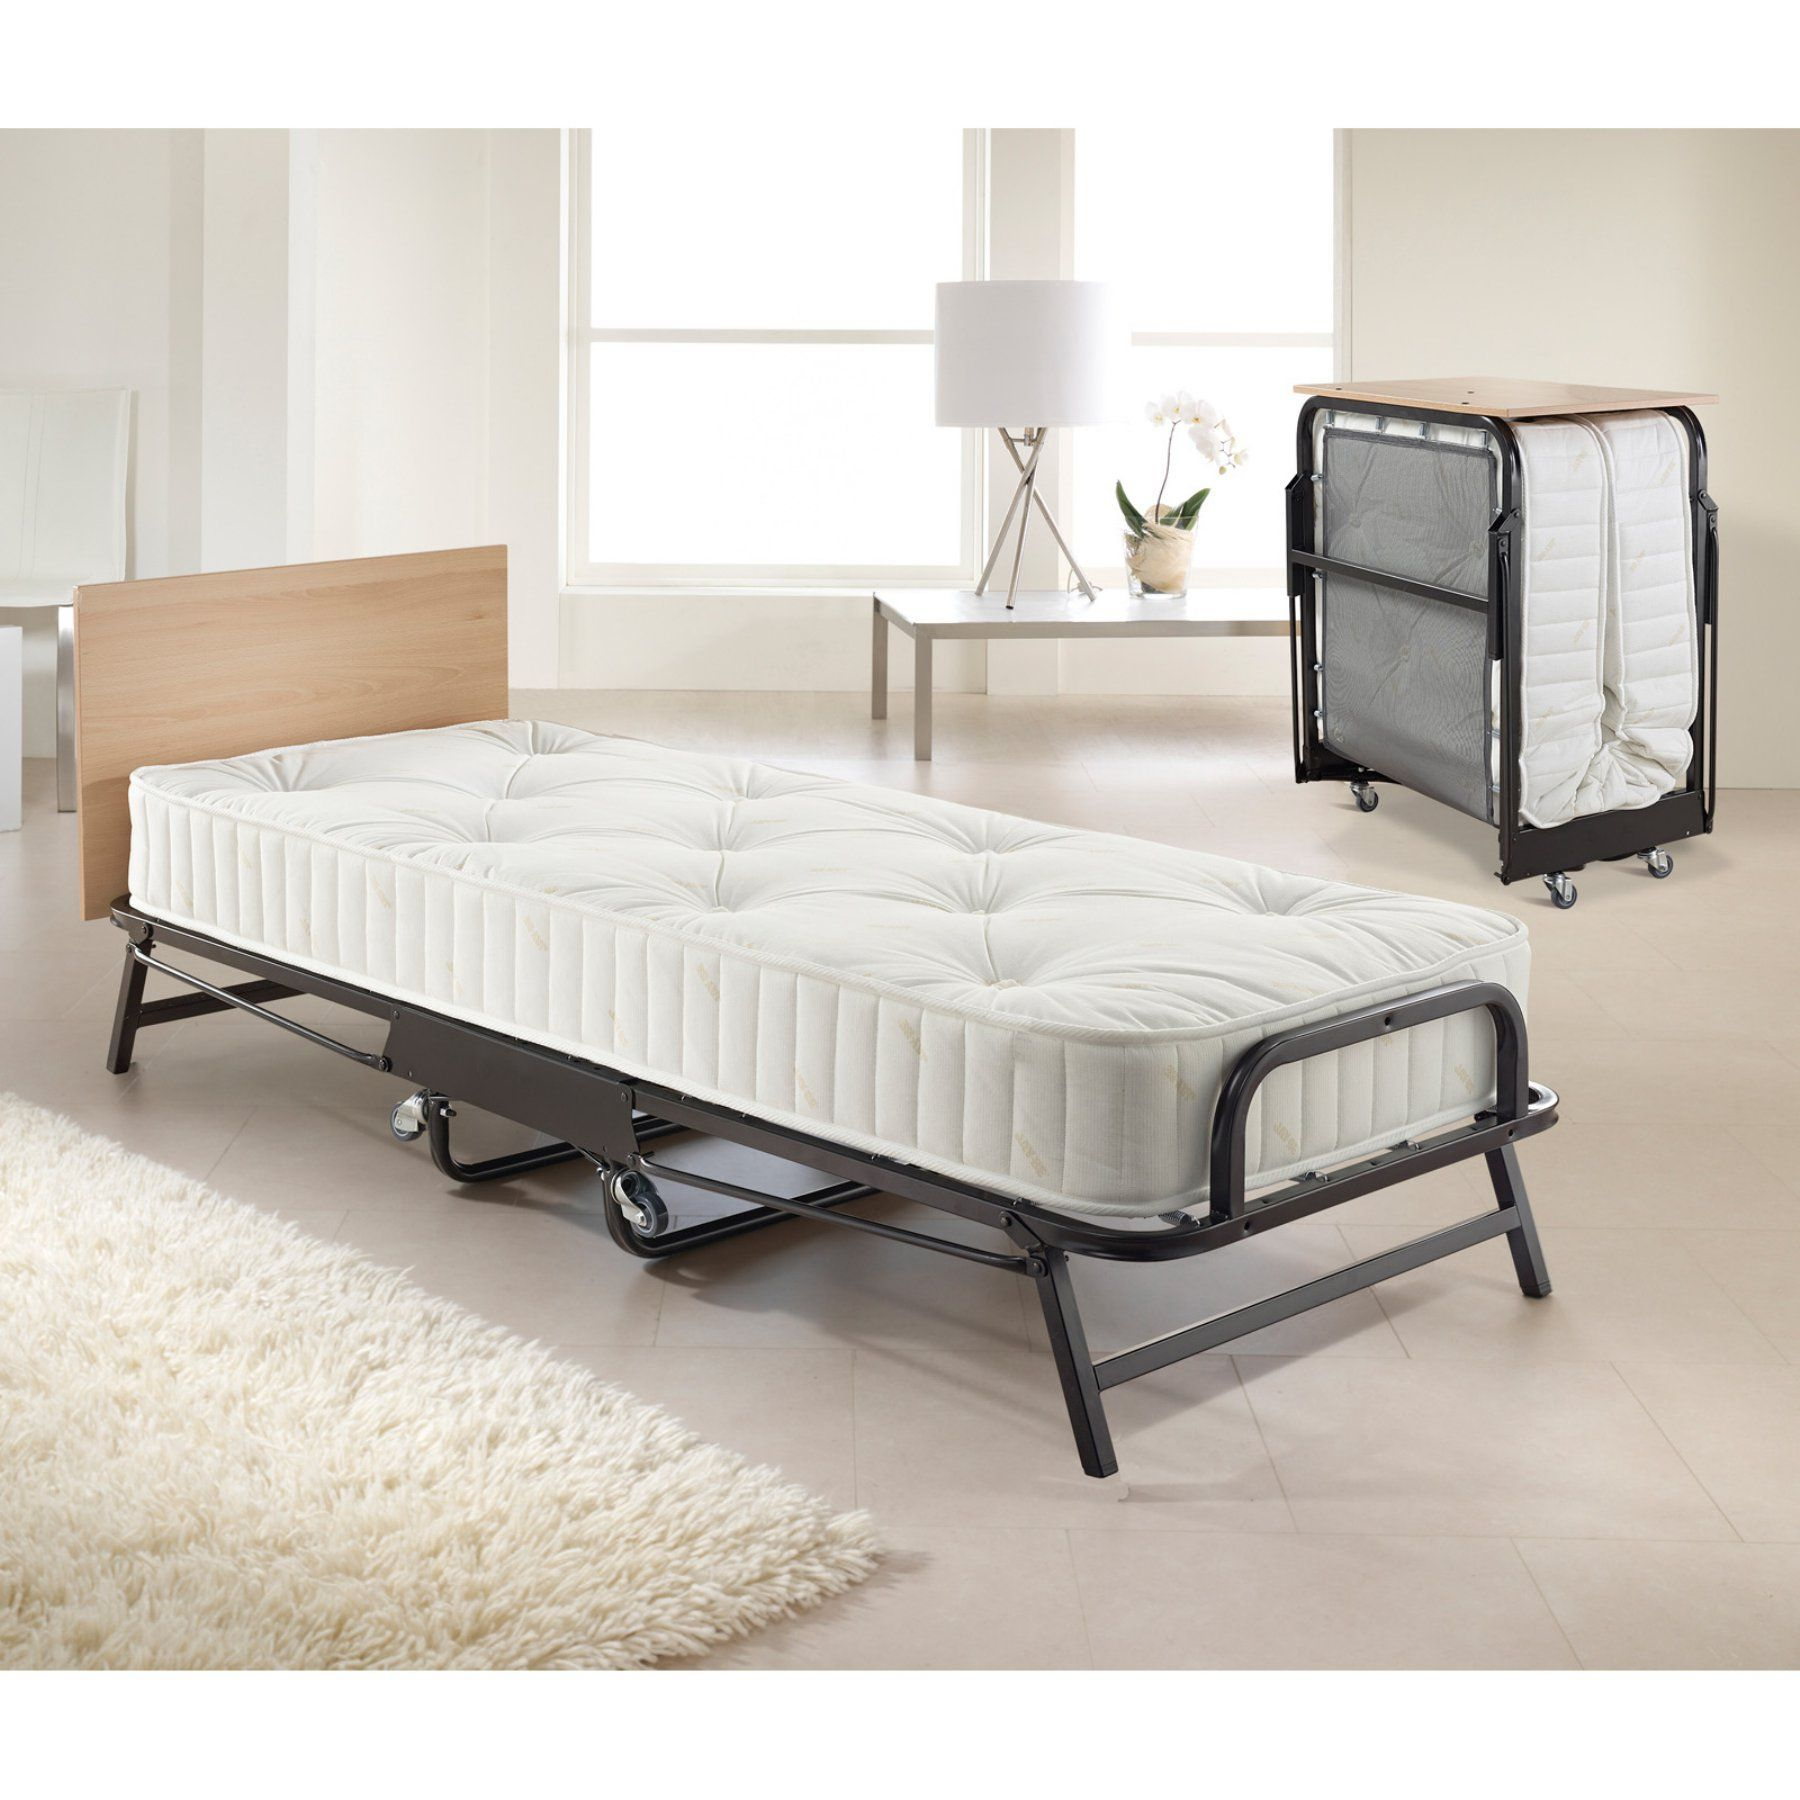 buy online 36f7f bf093 Jay-Be Hospitality Folding Bed with Deep Spring Mattress ...